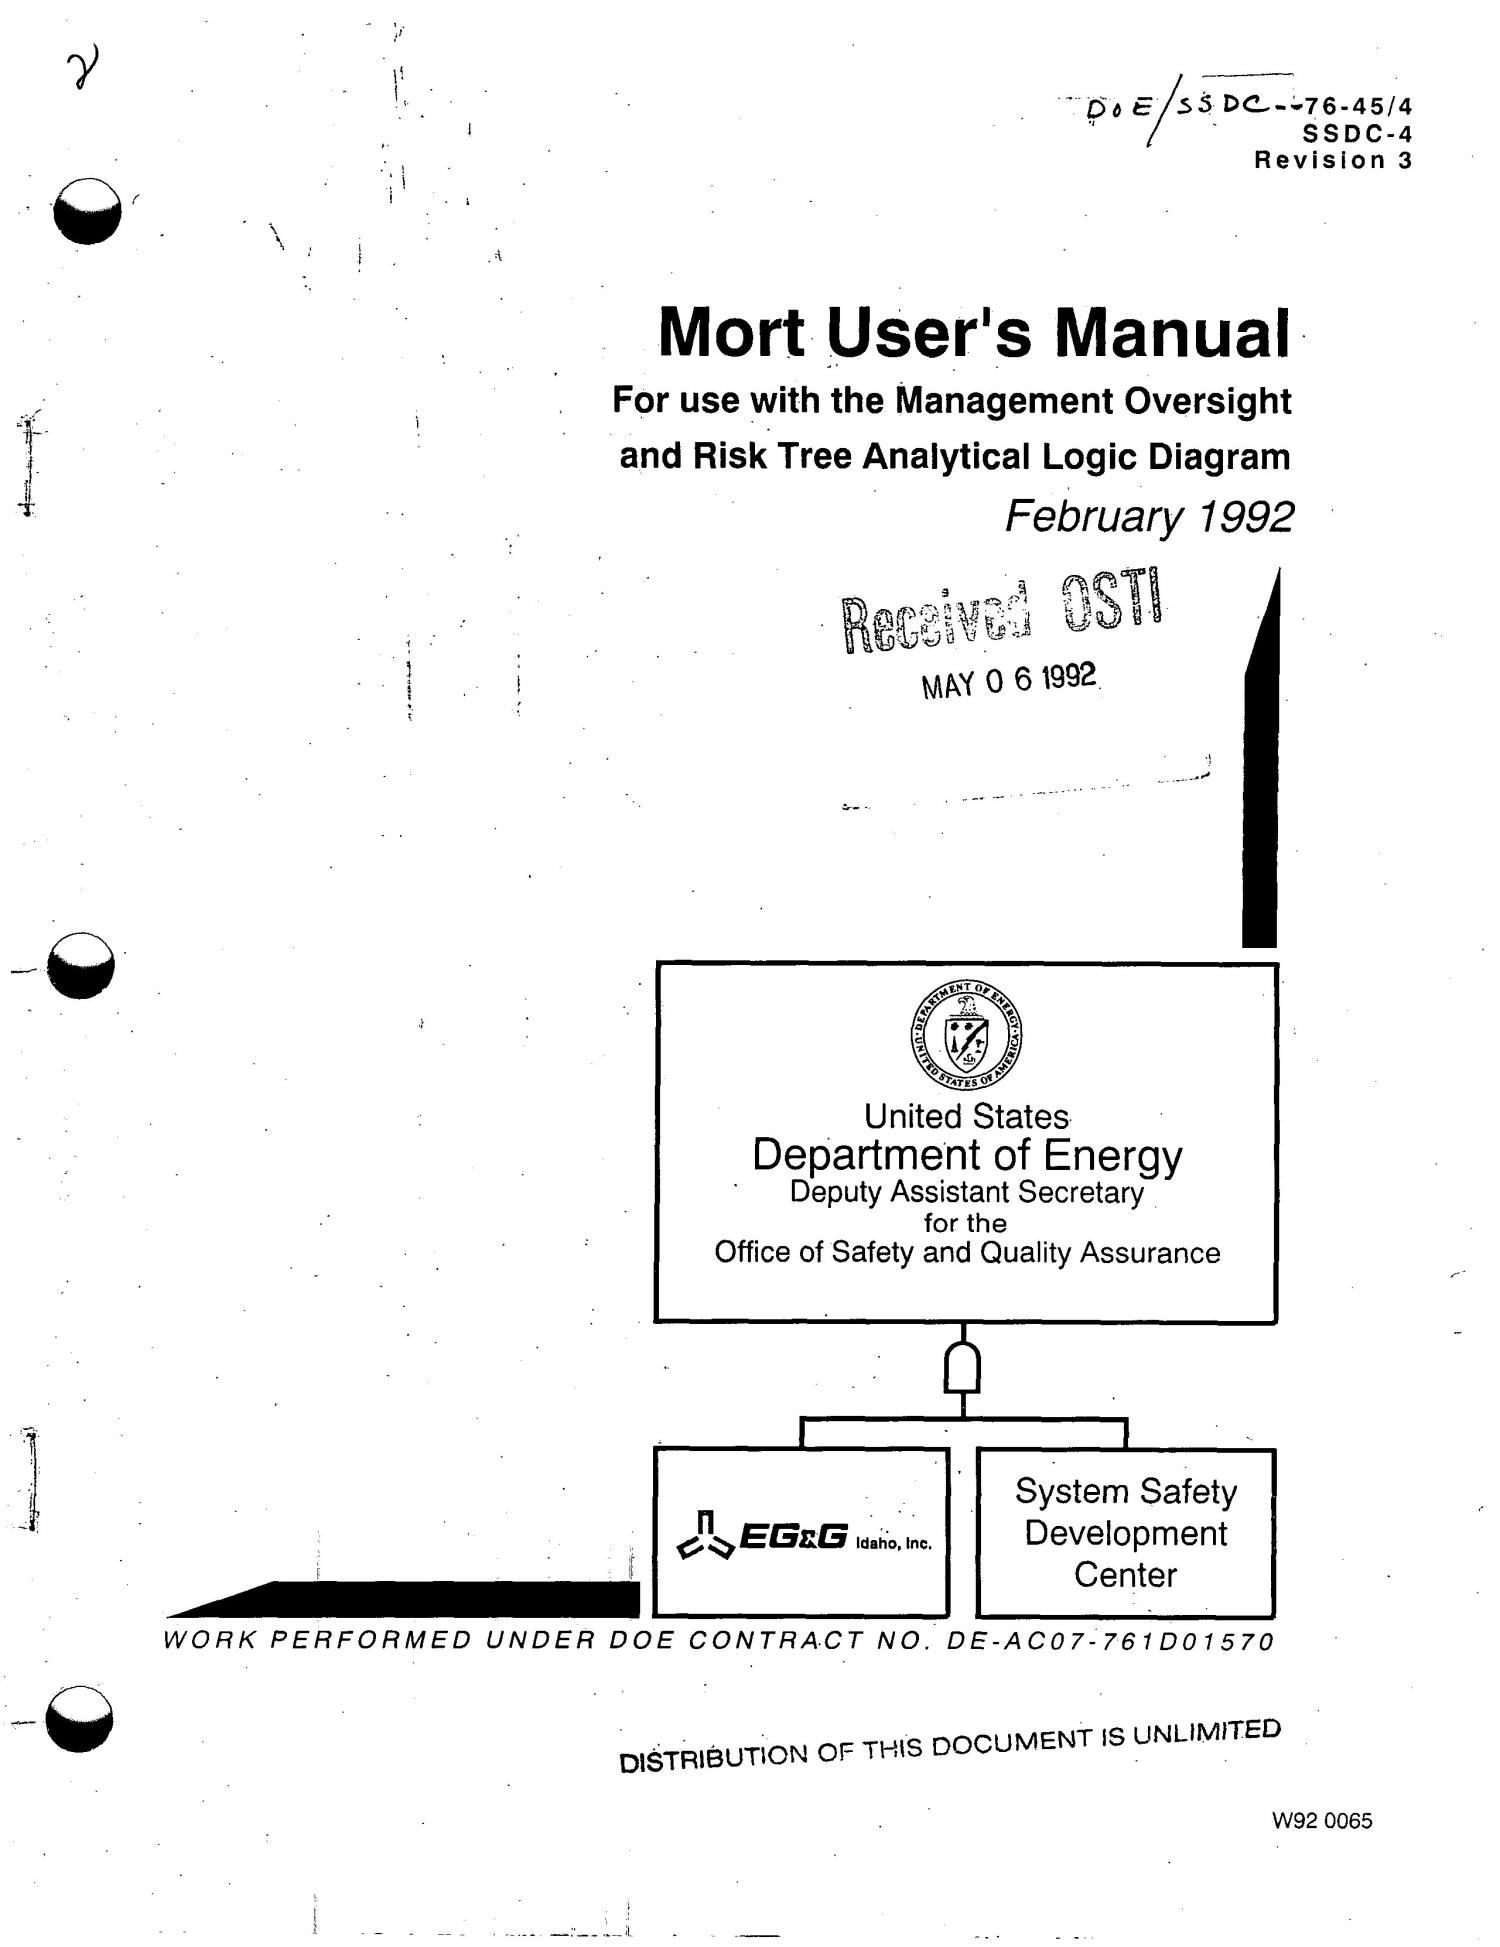 hight resolution of mort user s manual for use with the management oversight and risk tree analytical logic diagram digital library